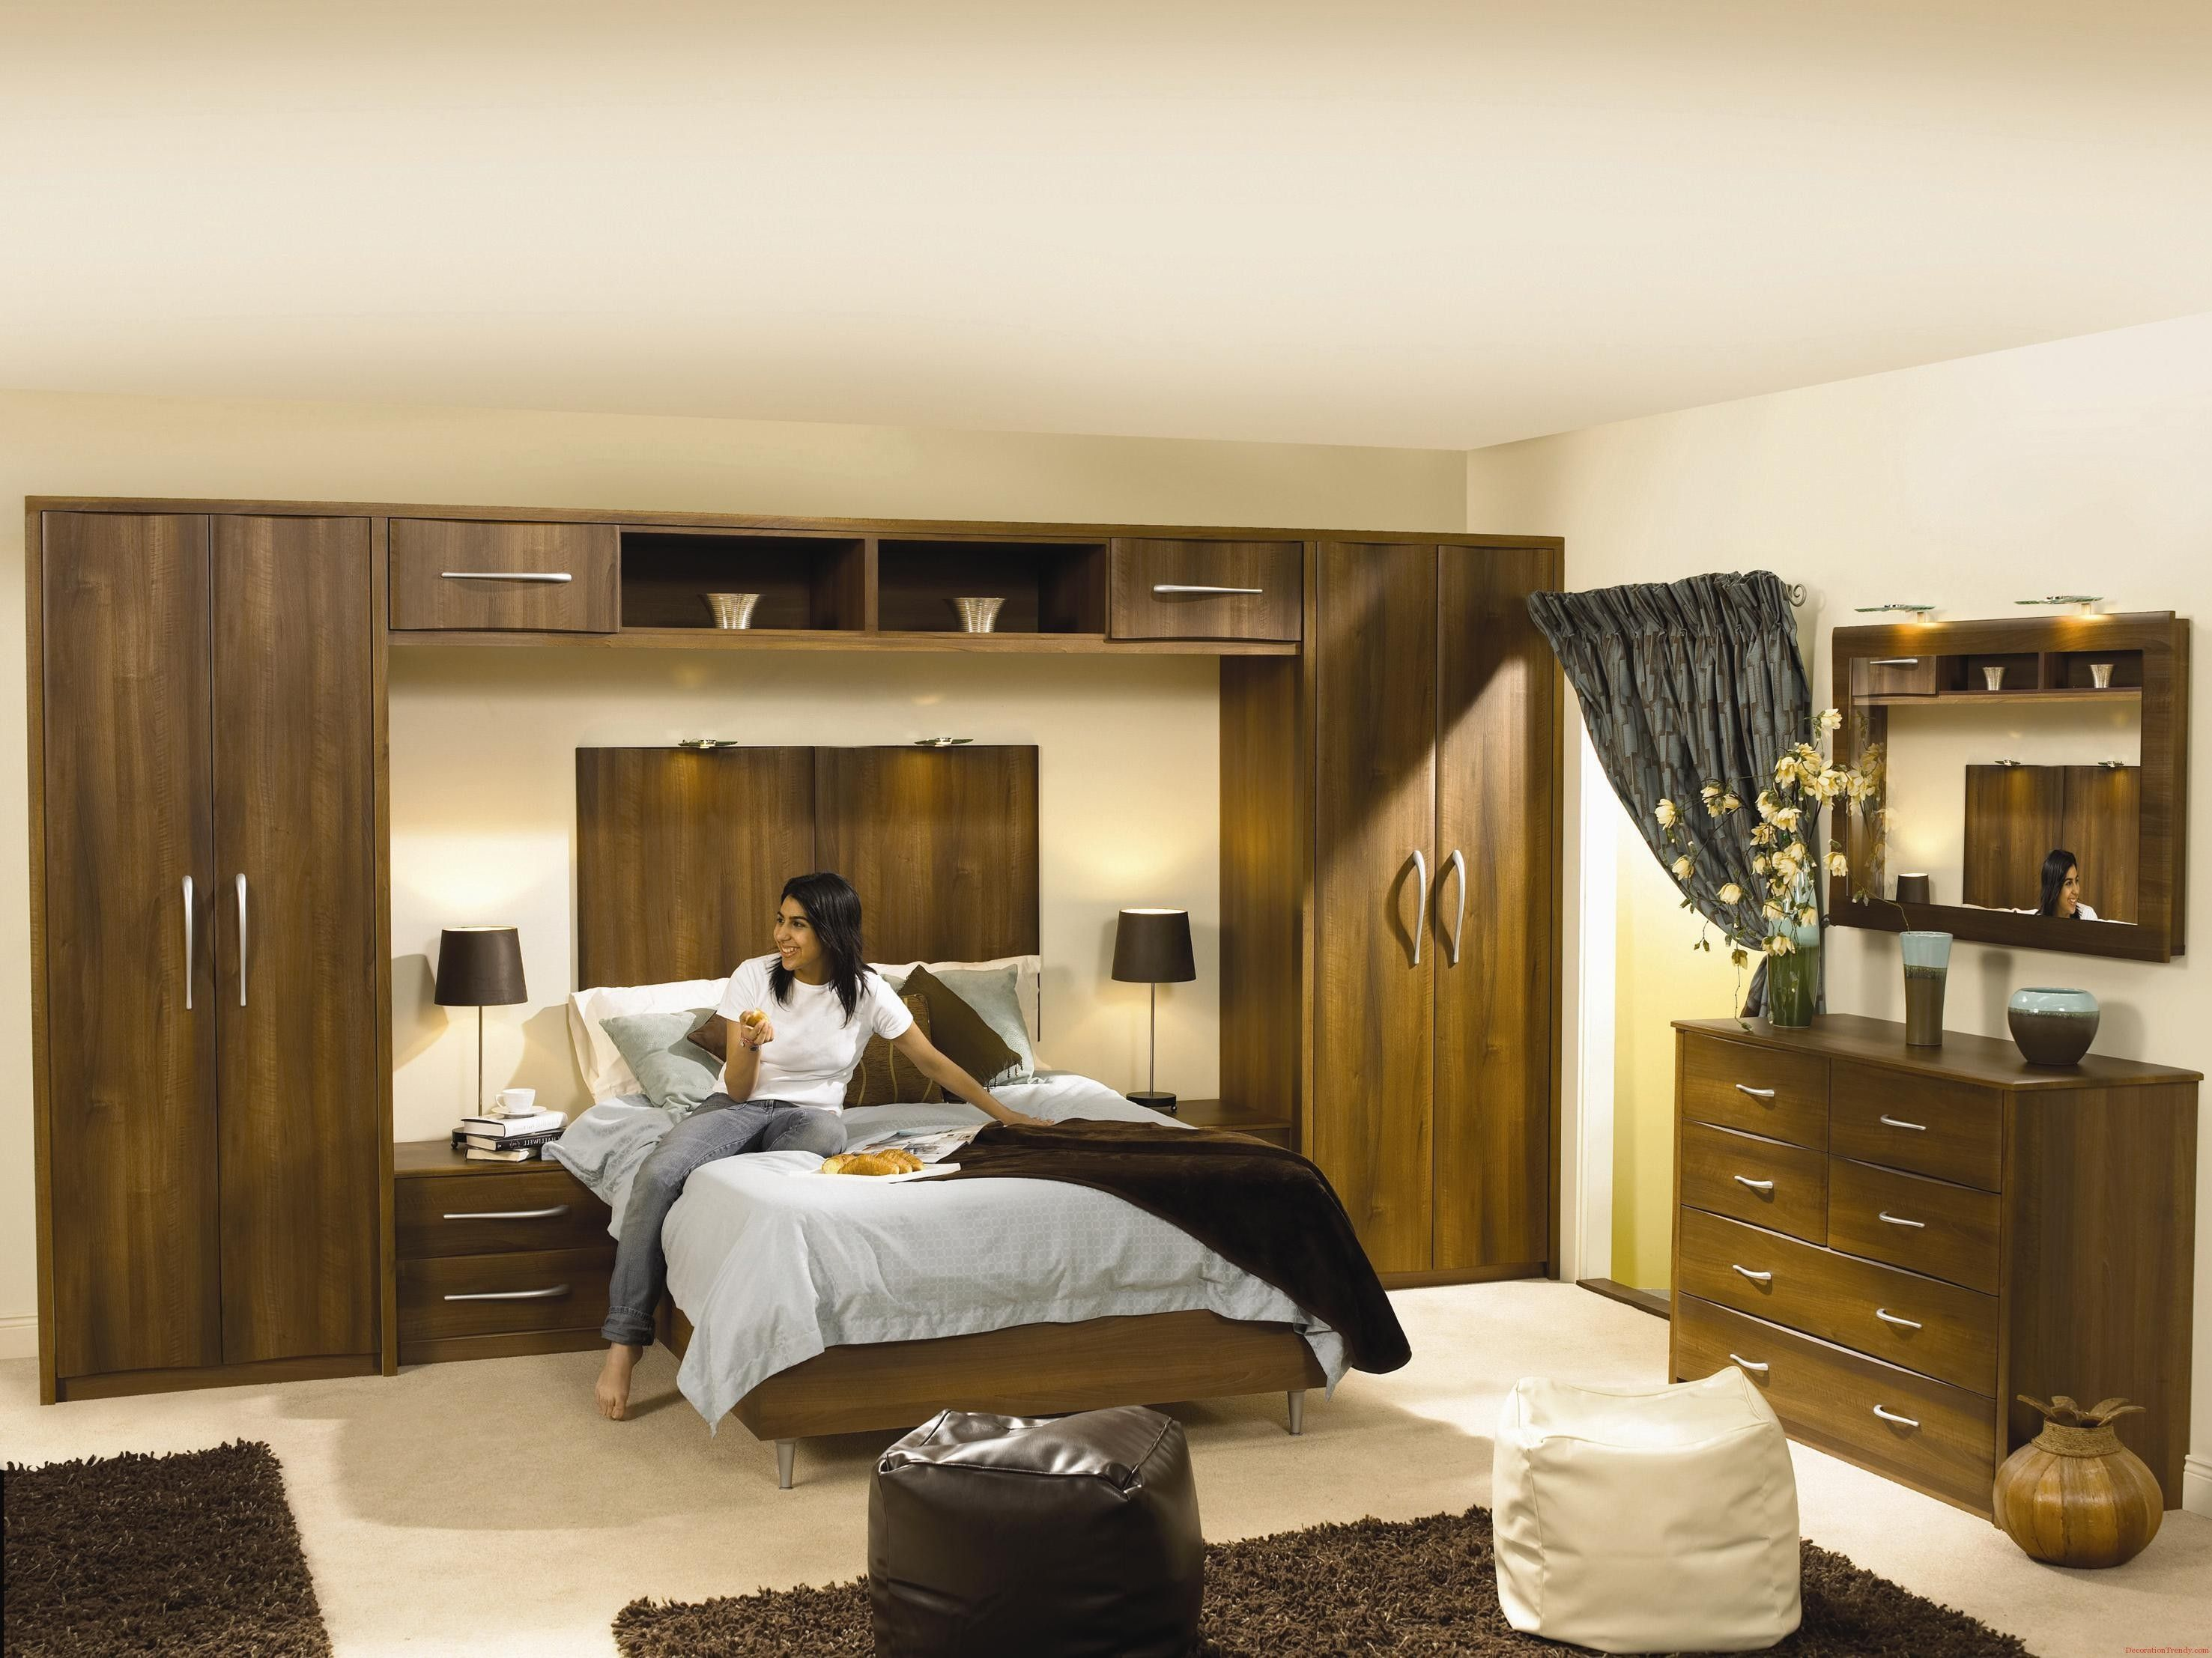 Best Furniture For Small Bedrooms Small Bedroom Interior Bedroom Furniture Design Fitted Bedroom Furniture